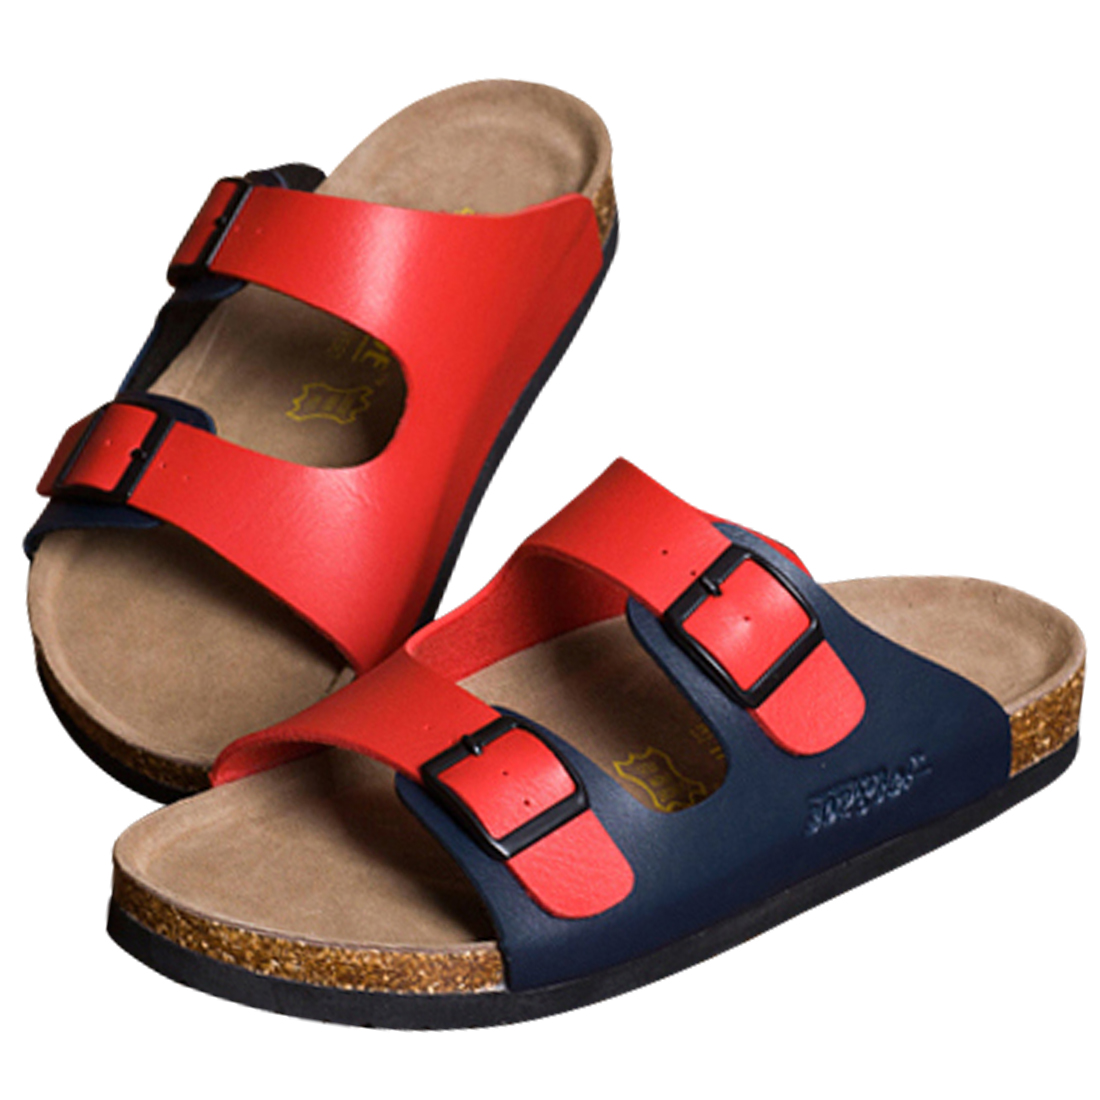 Men Fashion Adjustable Buckles Sandals Red Navy Blue US 10